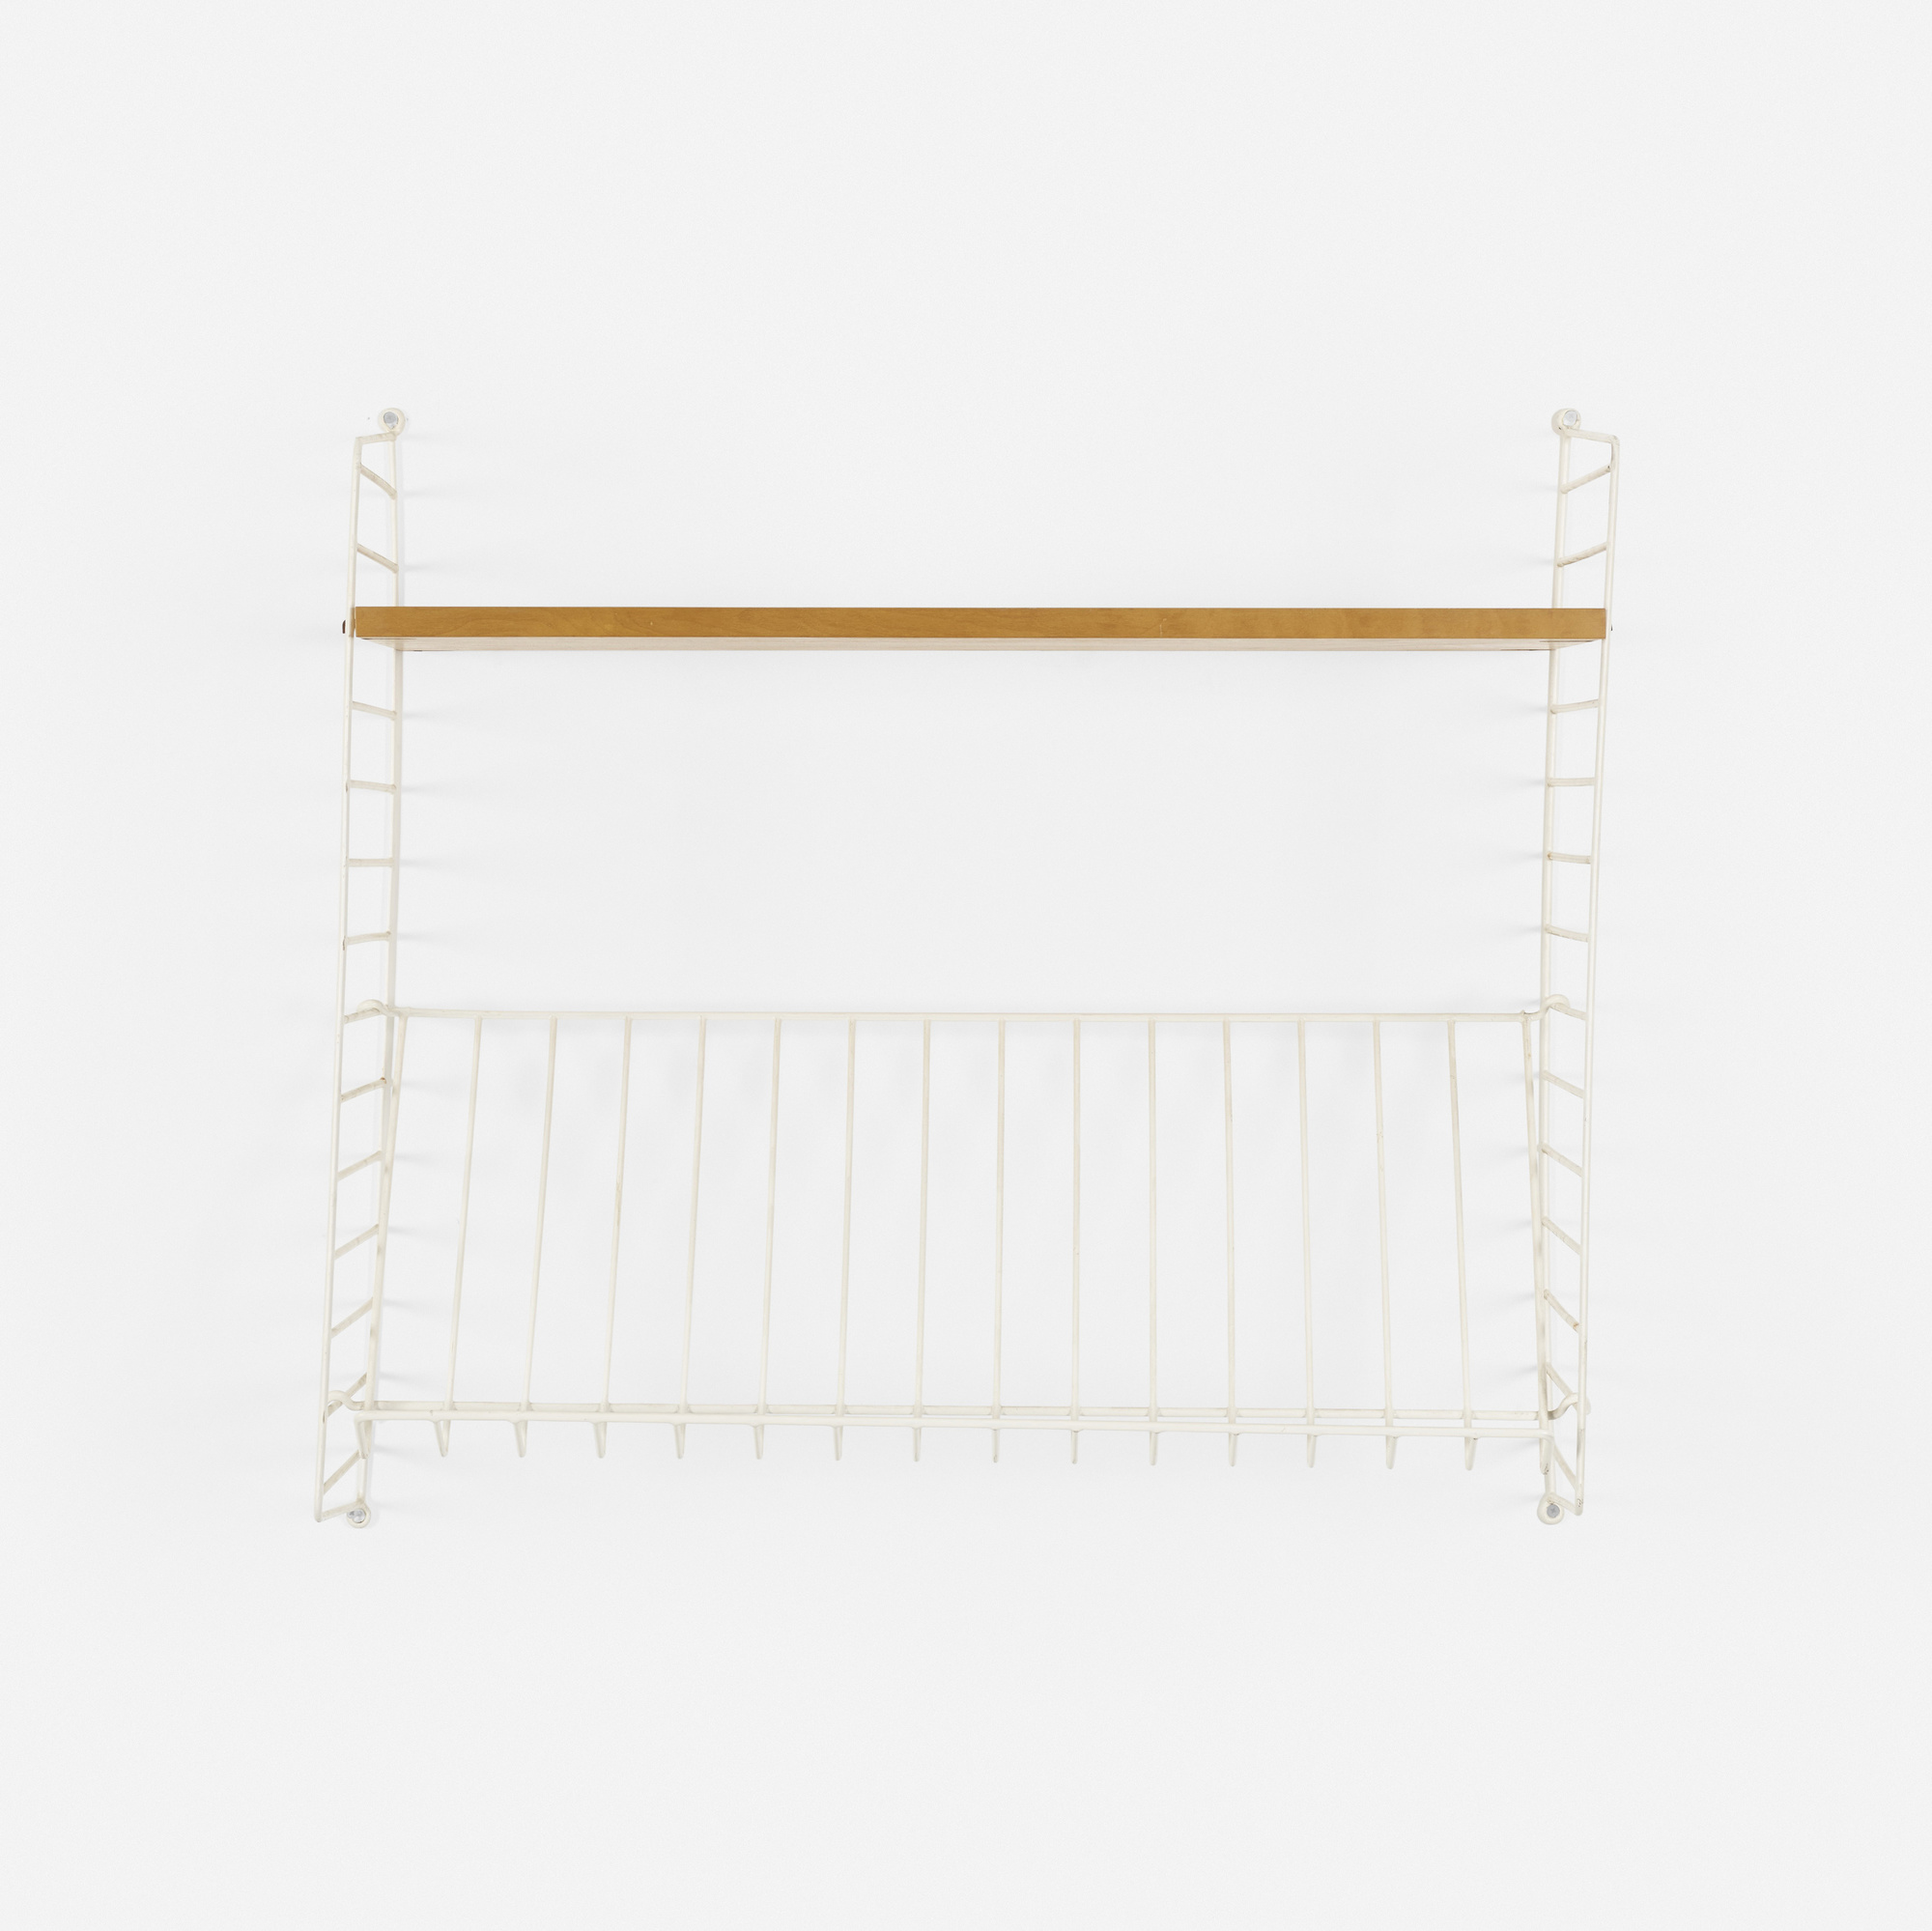 744: Karin and Nisse Strinning / shelving unit (2 of 2)